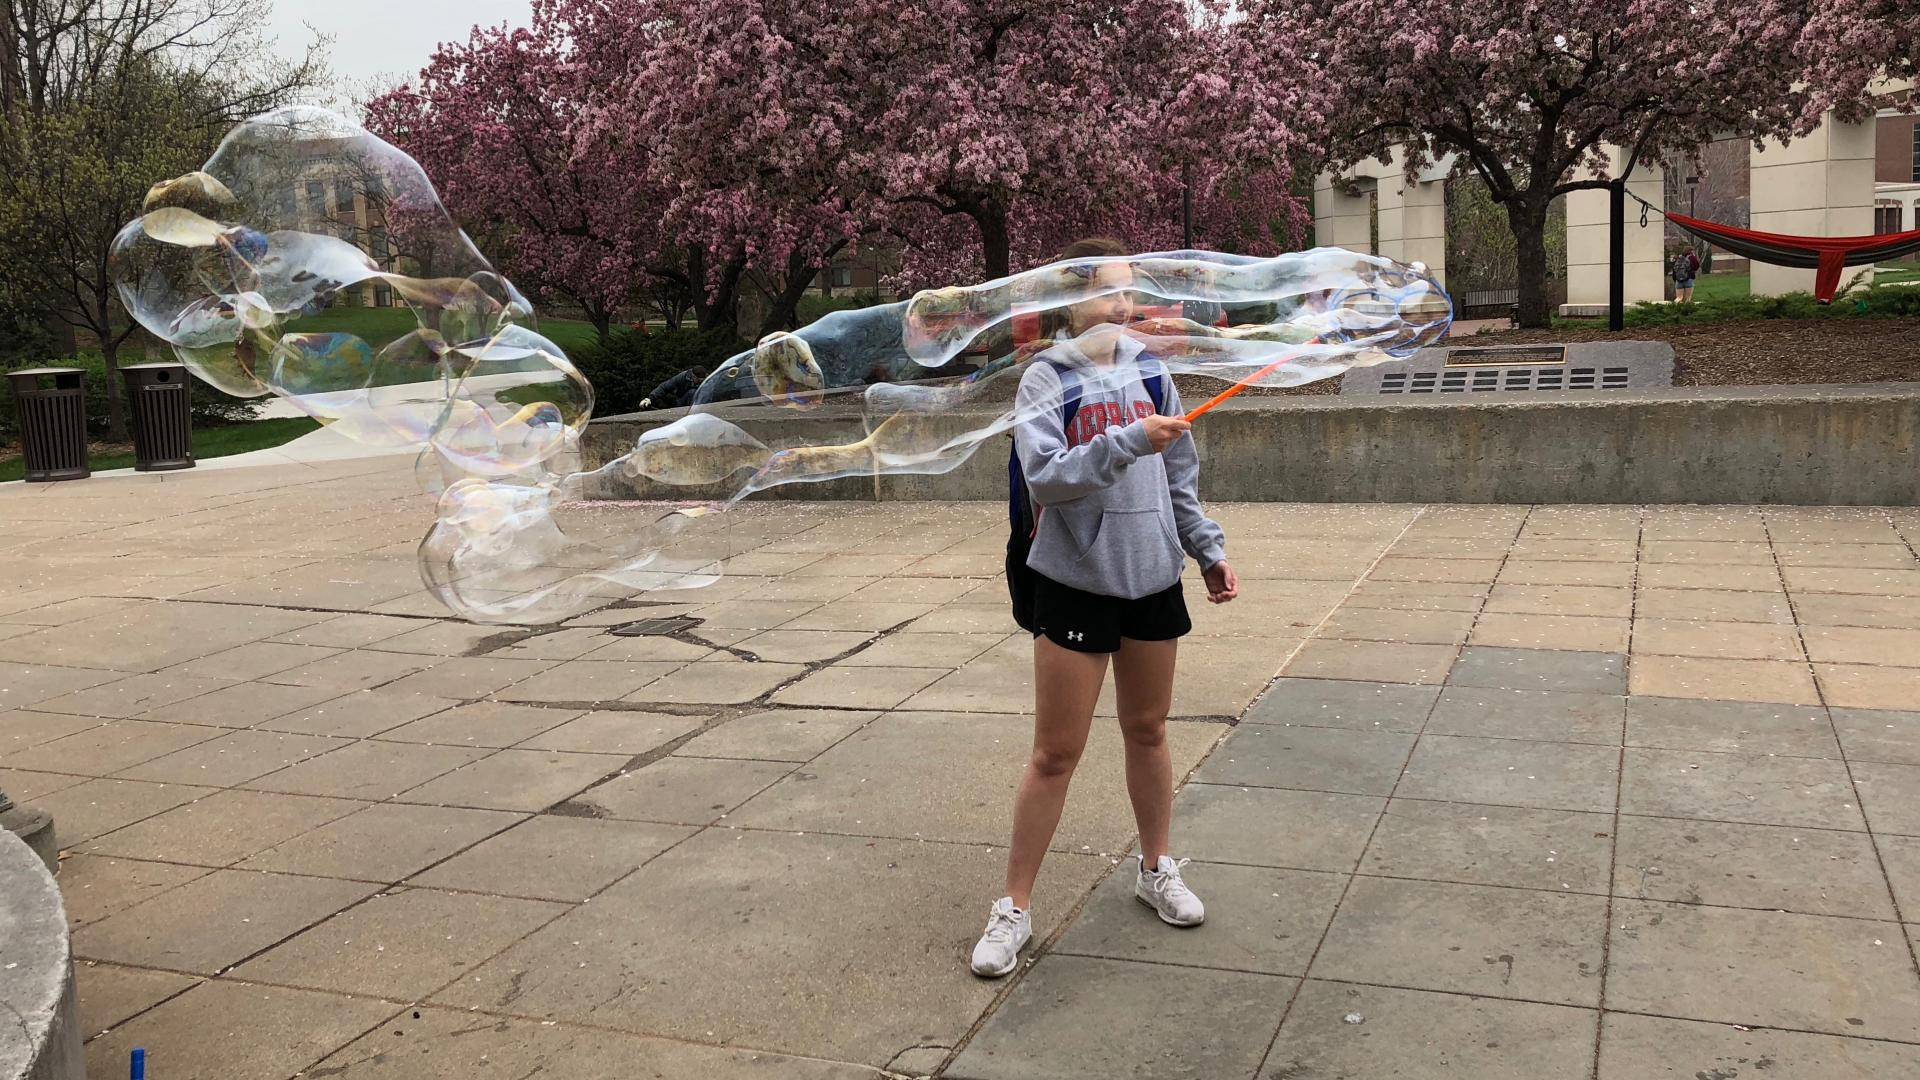 A student relaxes by blowing bubbles during finals week.